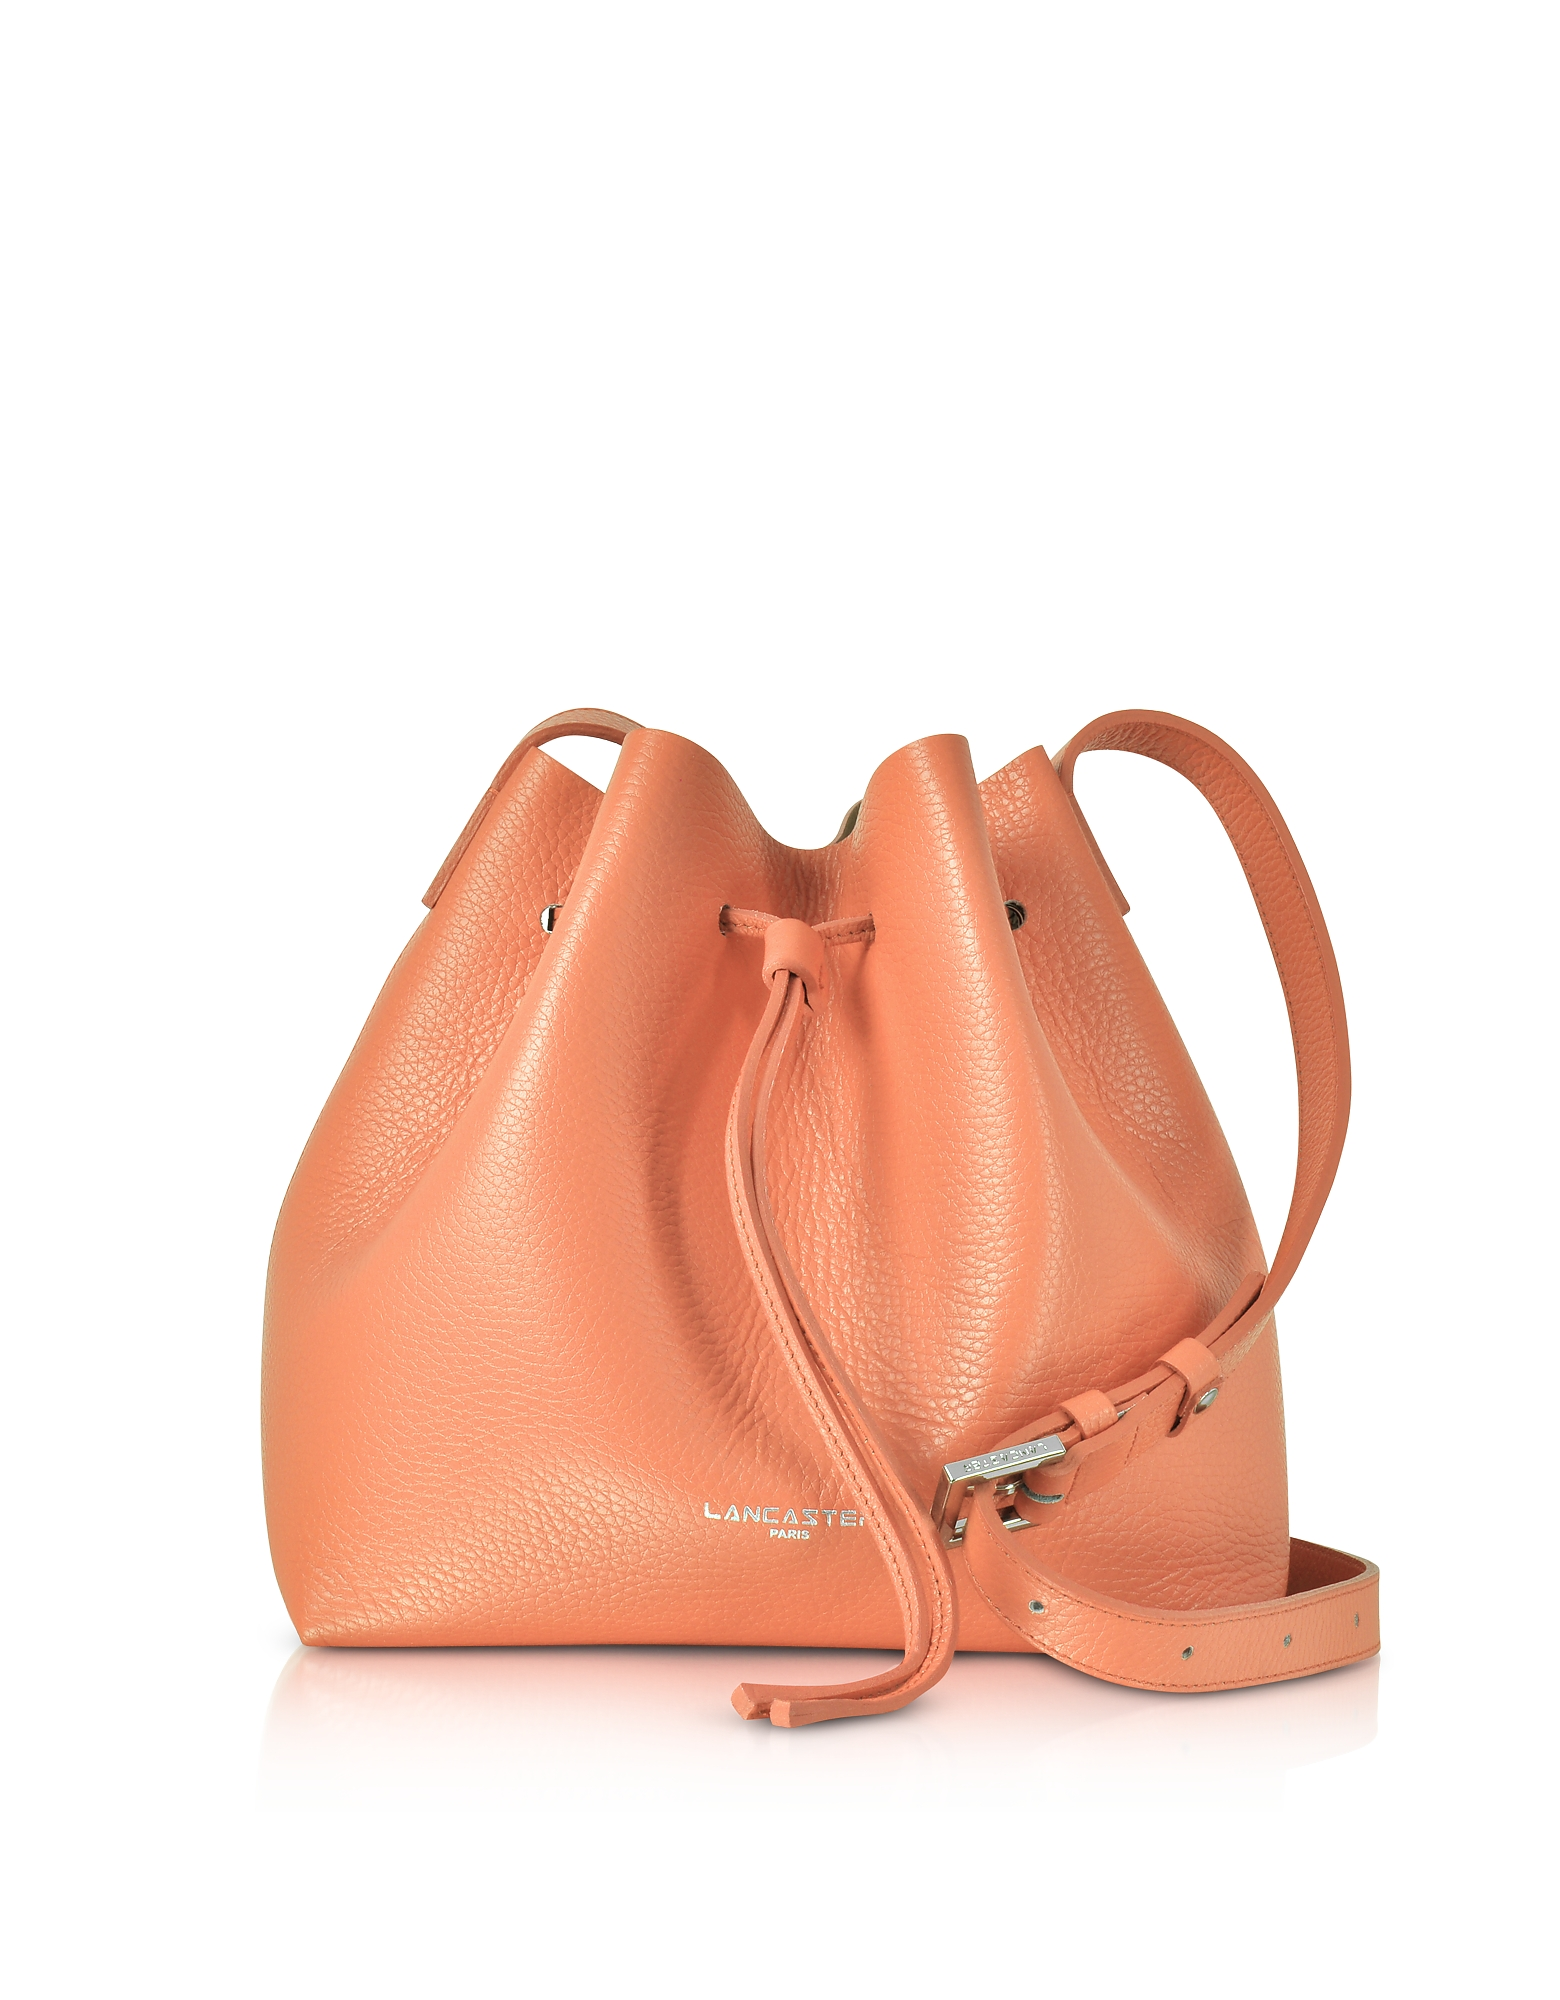 Lancaster Paris Handbags, Pur & Element Foulonné Leather Bucket Bag